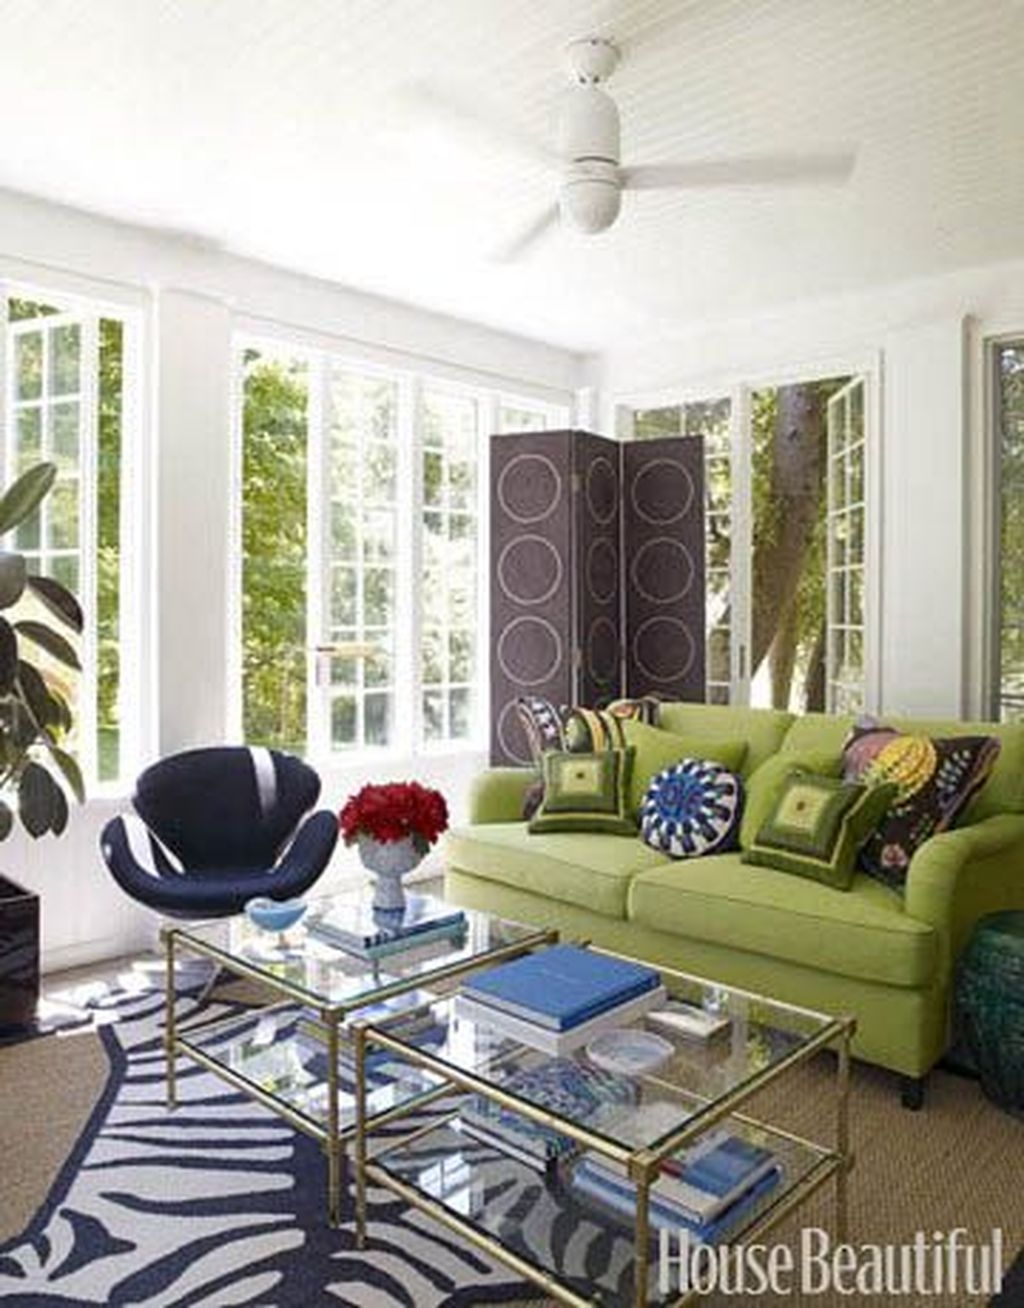 Awesome Glass Coffee Tables Ideas For Small Living Room Design35